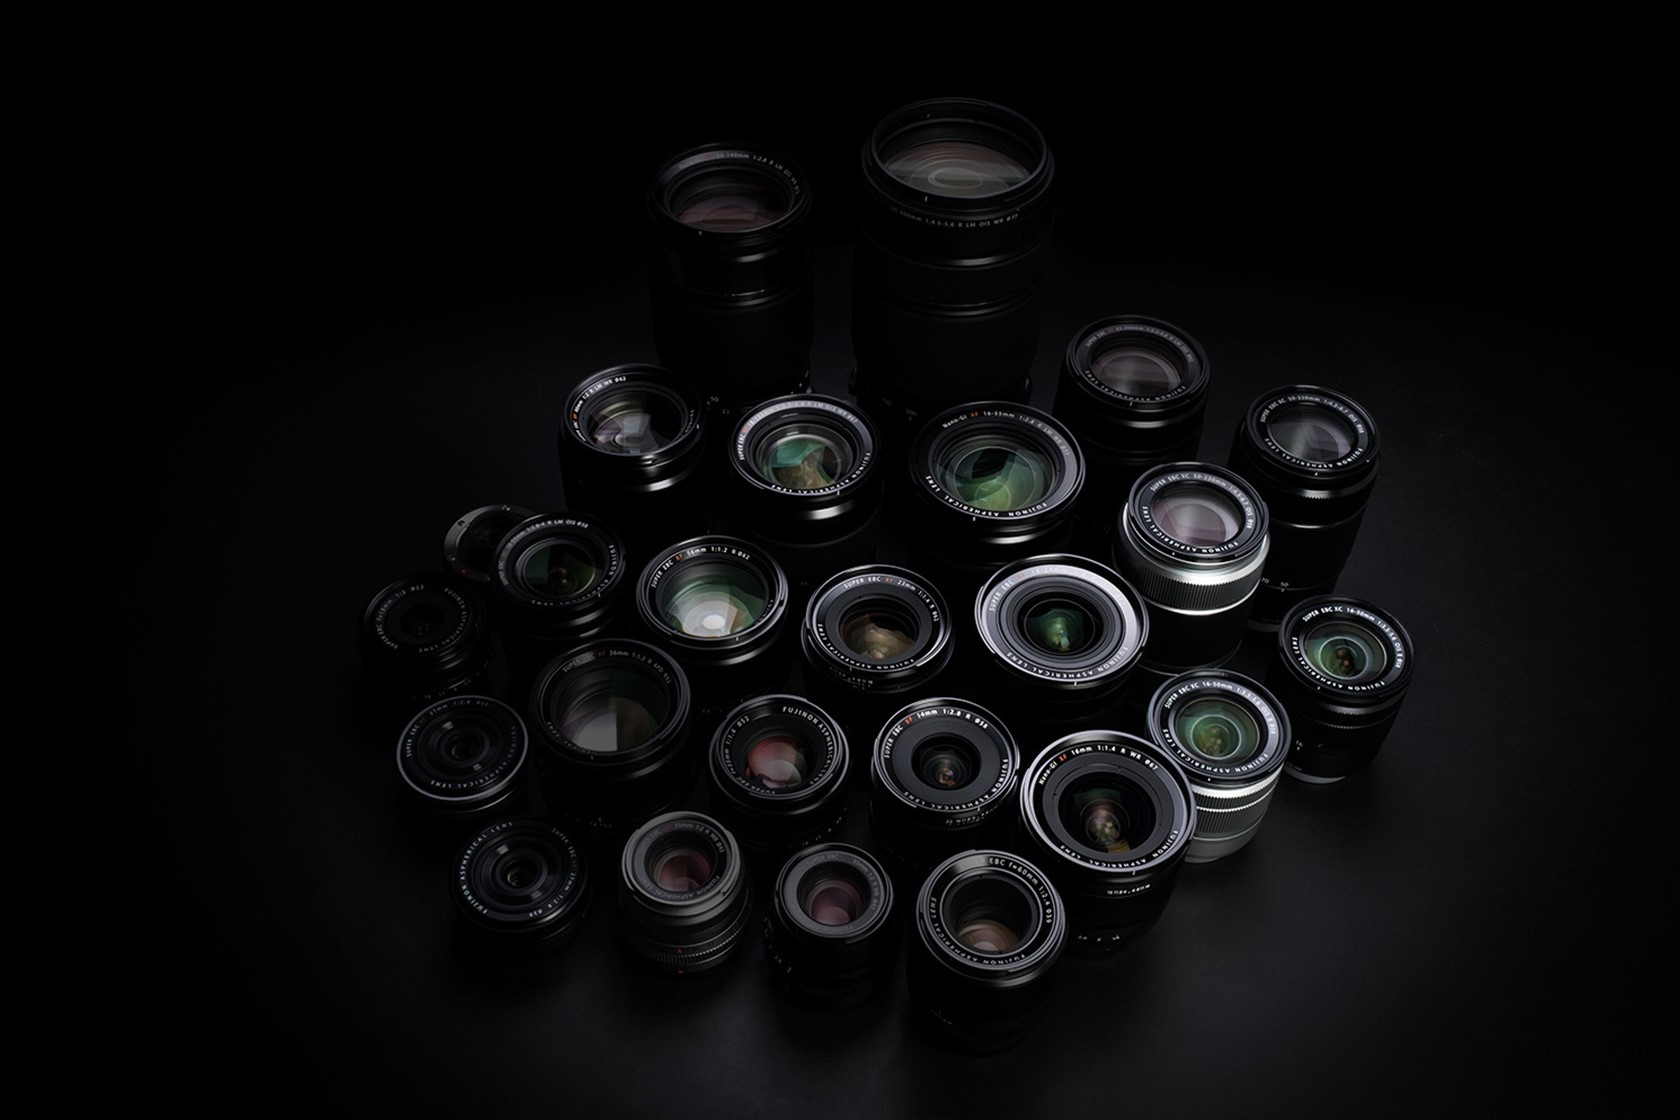 Collage of High Performance FUJINON Lenses